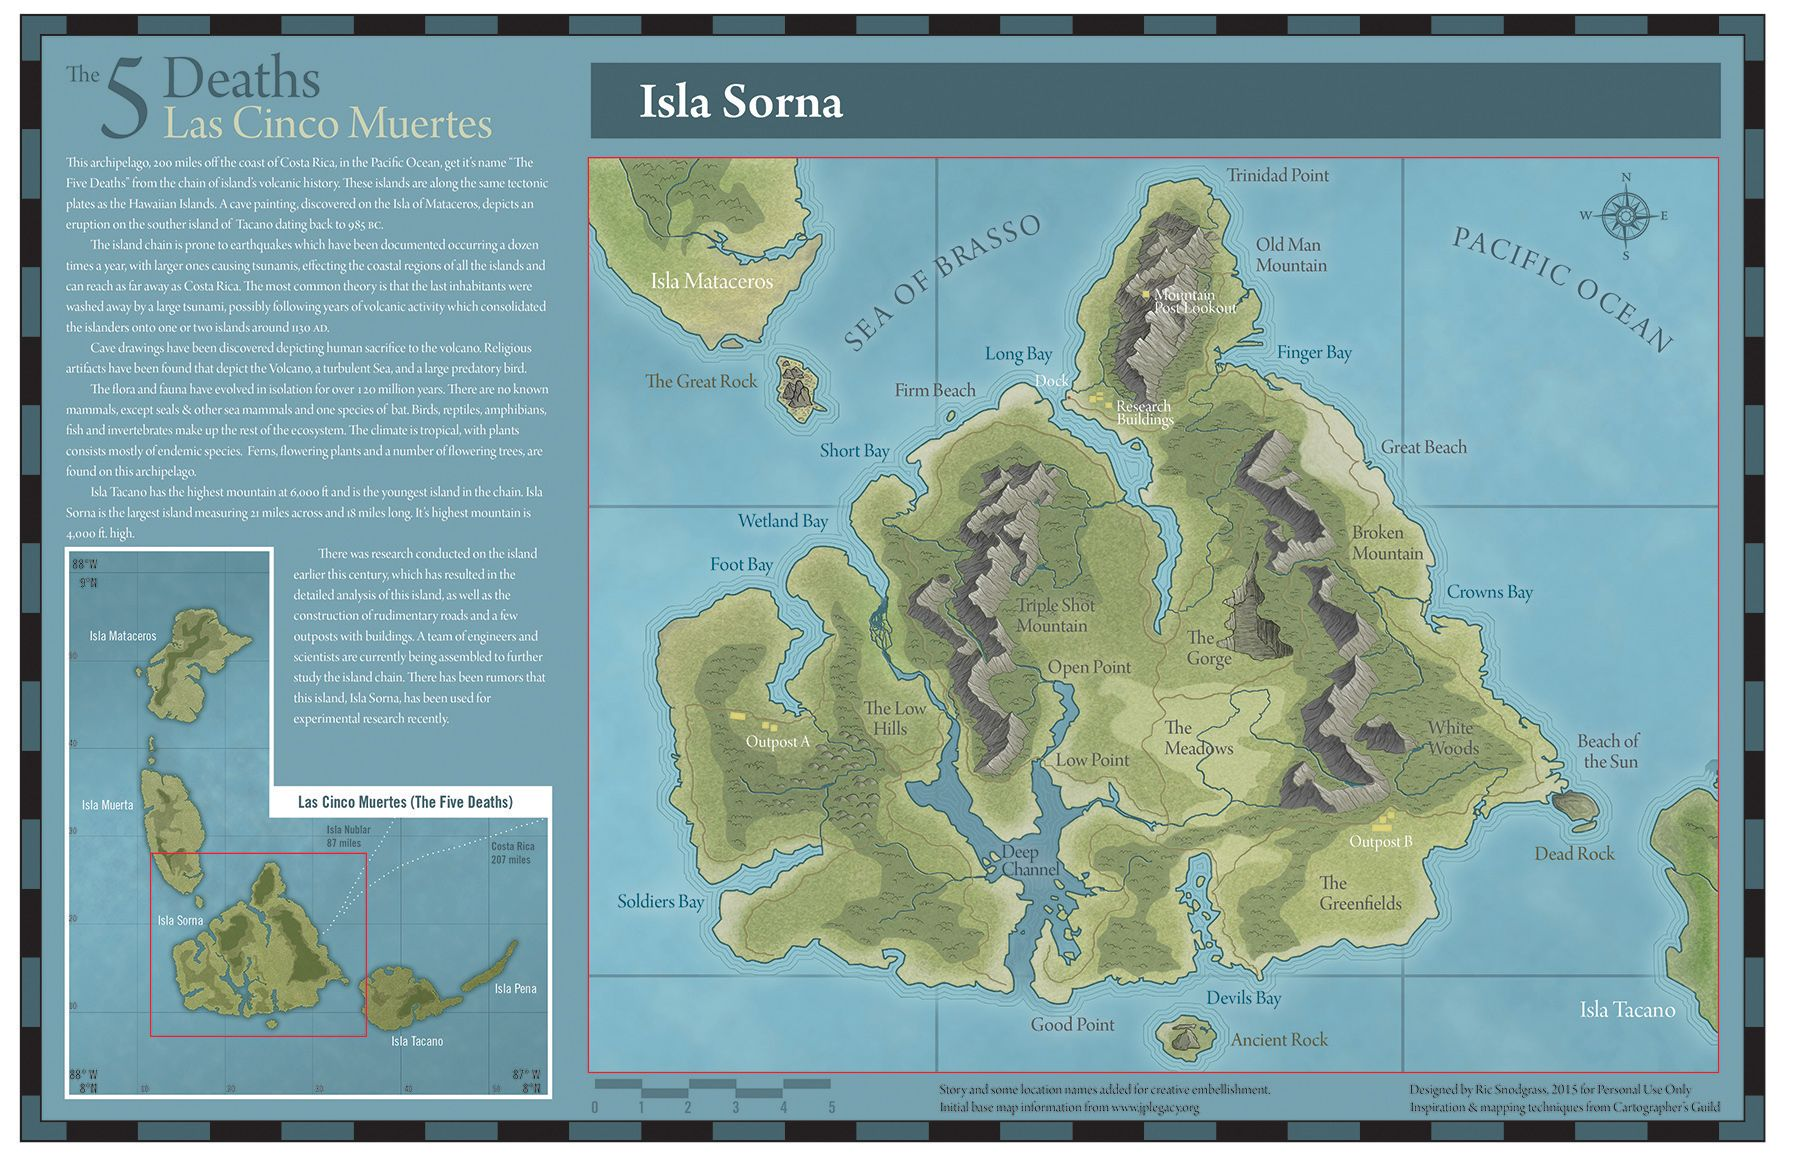 Isla Sorna from Jurassic Park 2/3 by Ric Snodgrass - my third attempt at a fantasy map